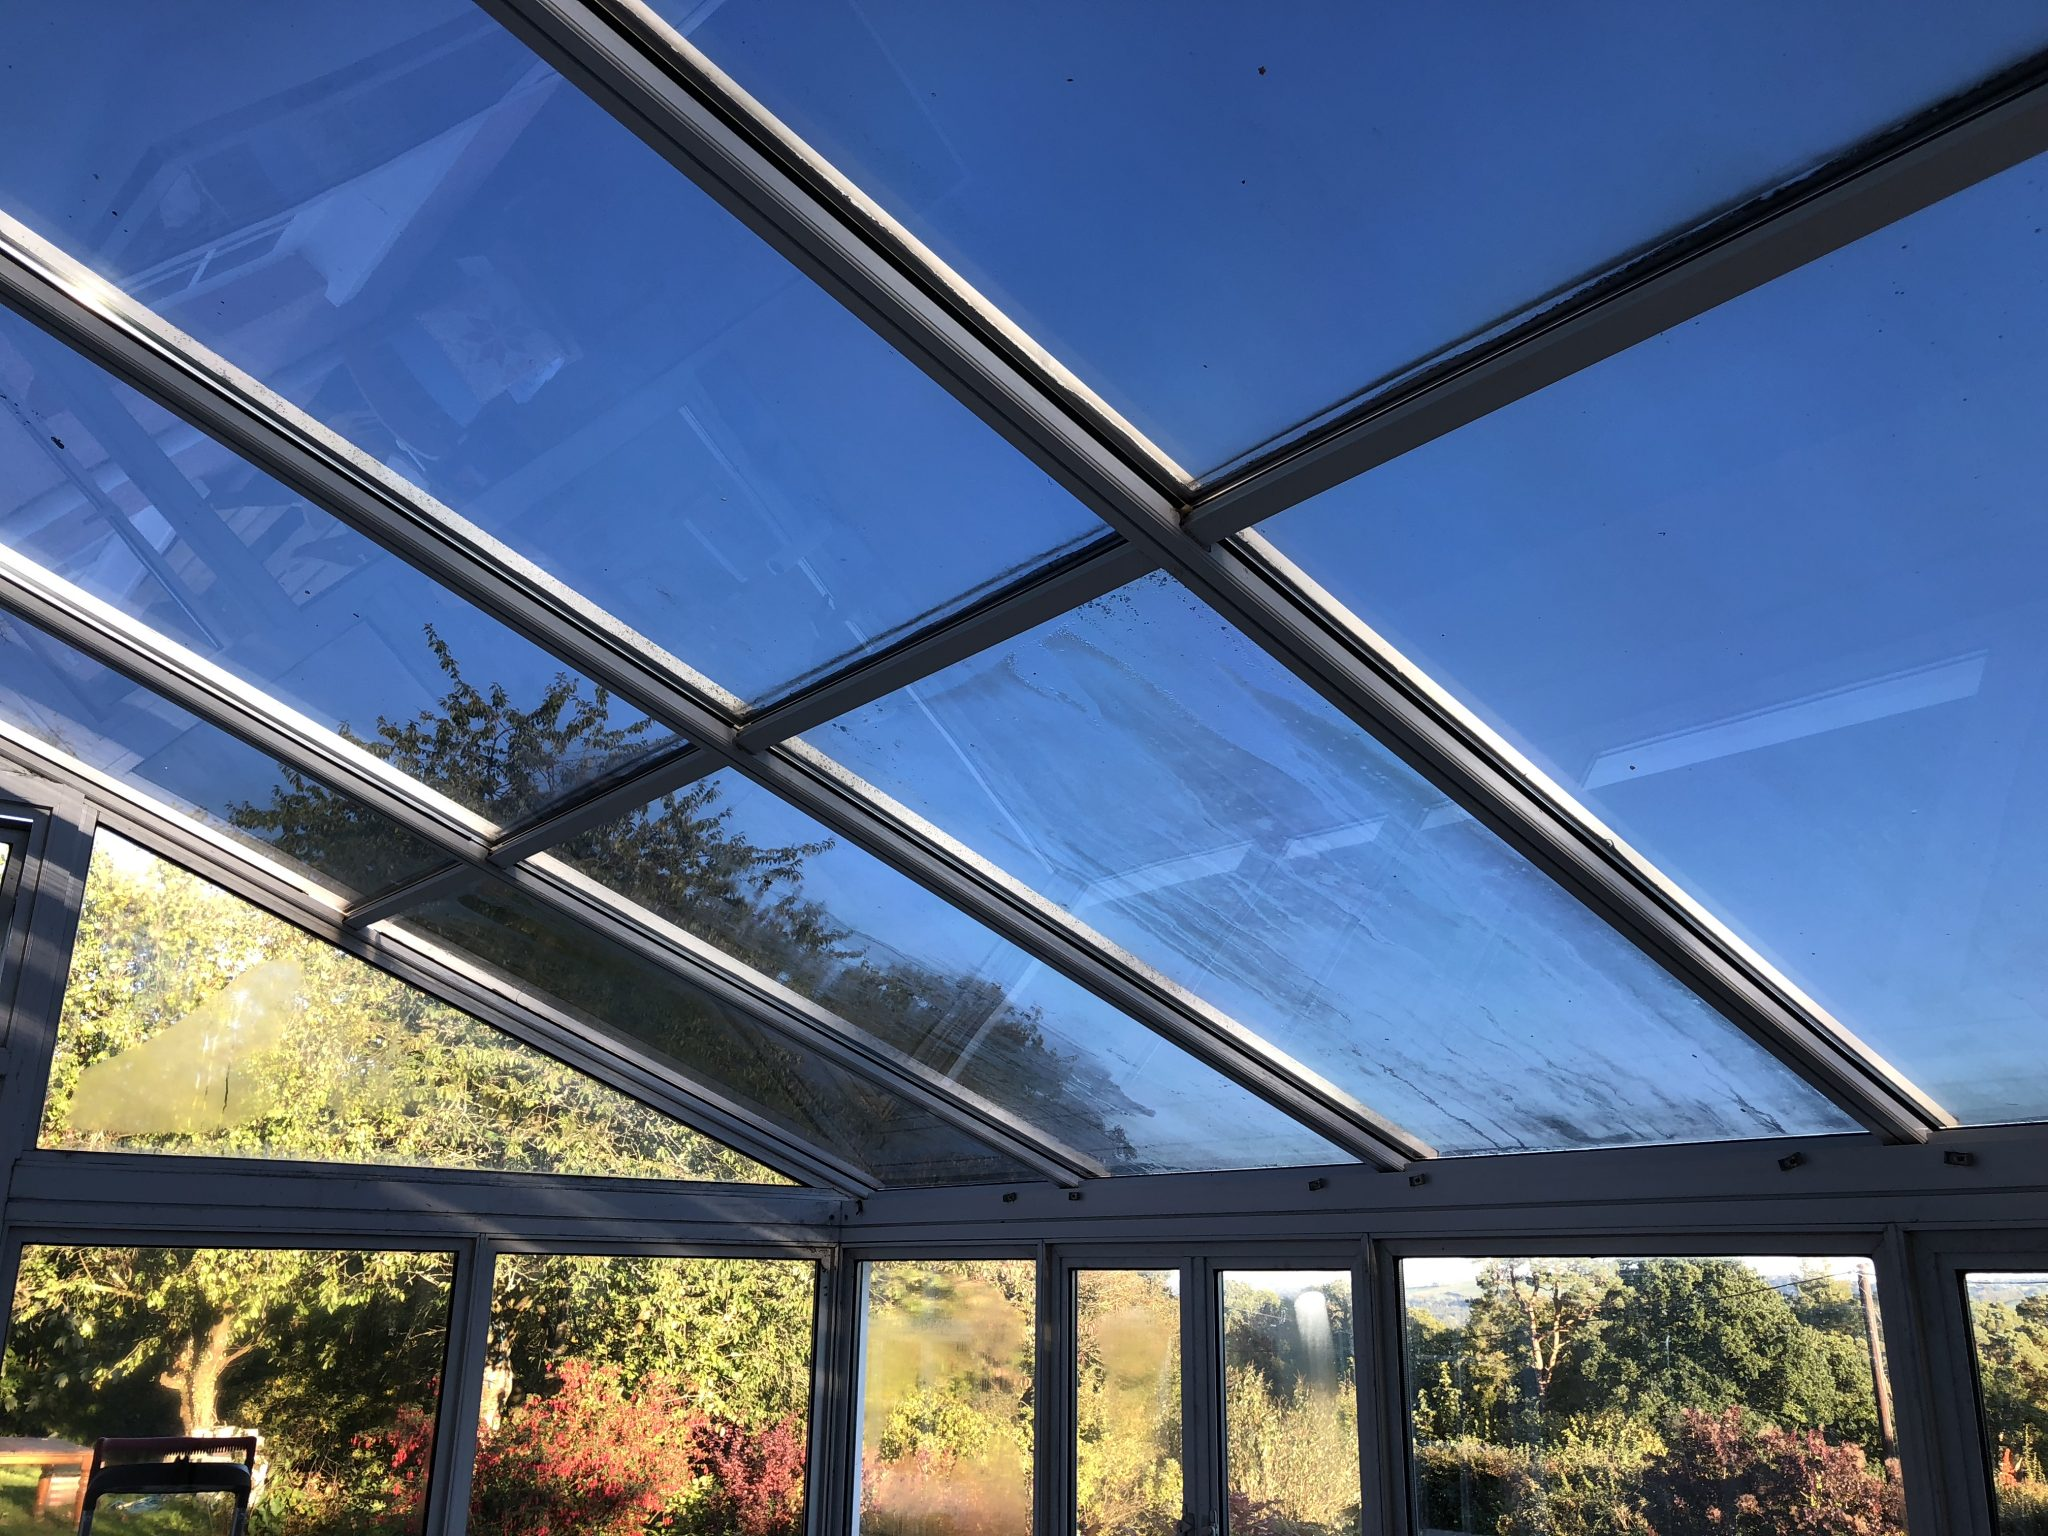 Johnsons Nightscape Window Film New Nightscape Window Film for Conservatories